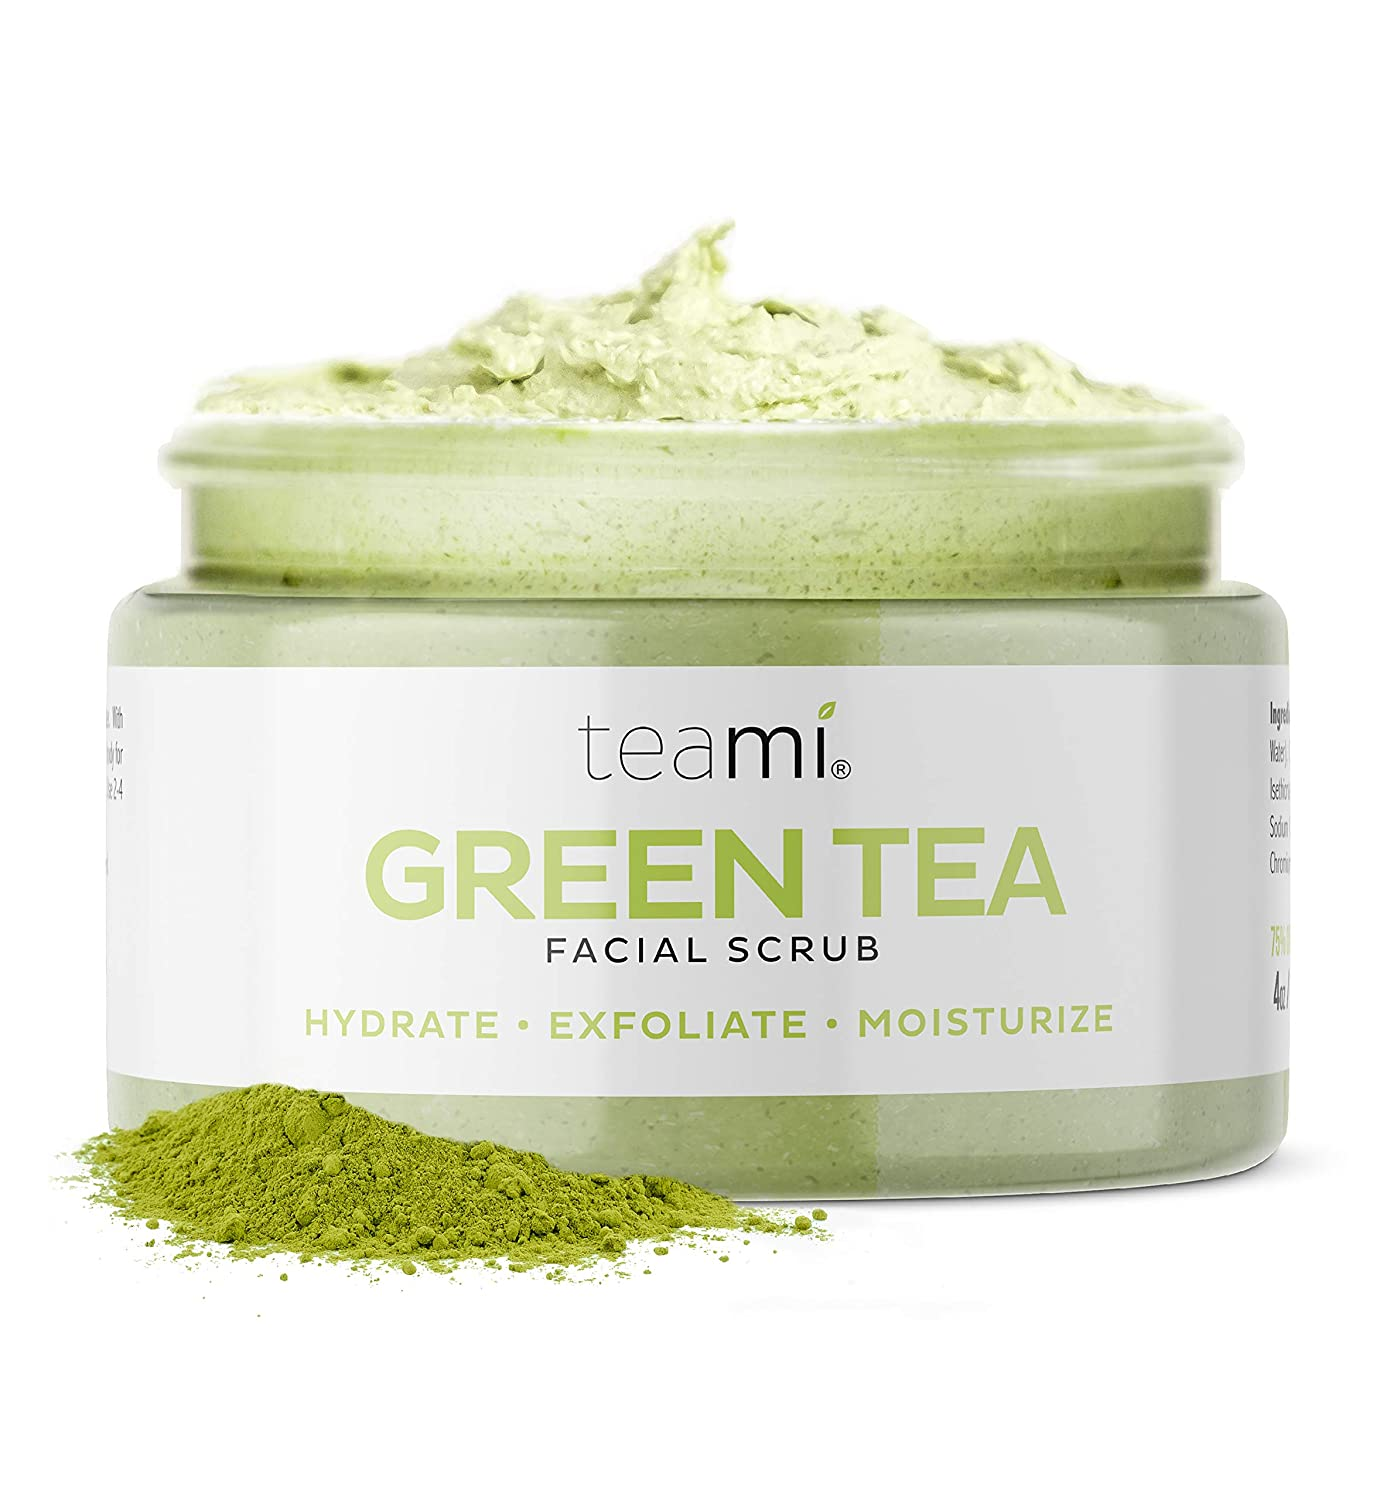 Teami Matcha Green Tea Face Scrub - Natural Face Exfoliator for All Skin Types - Organic Exfoliating Face Wash with Lemongrass - USA Made Facial Scrub for Women & Men - Non-Greasy Daily Face Exfoliant : Beauty